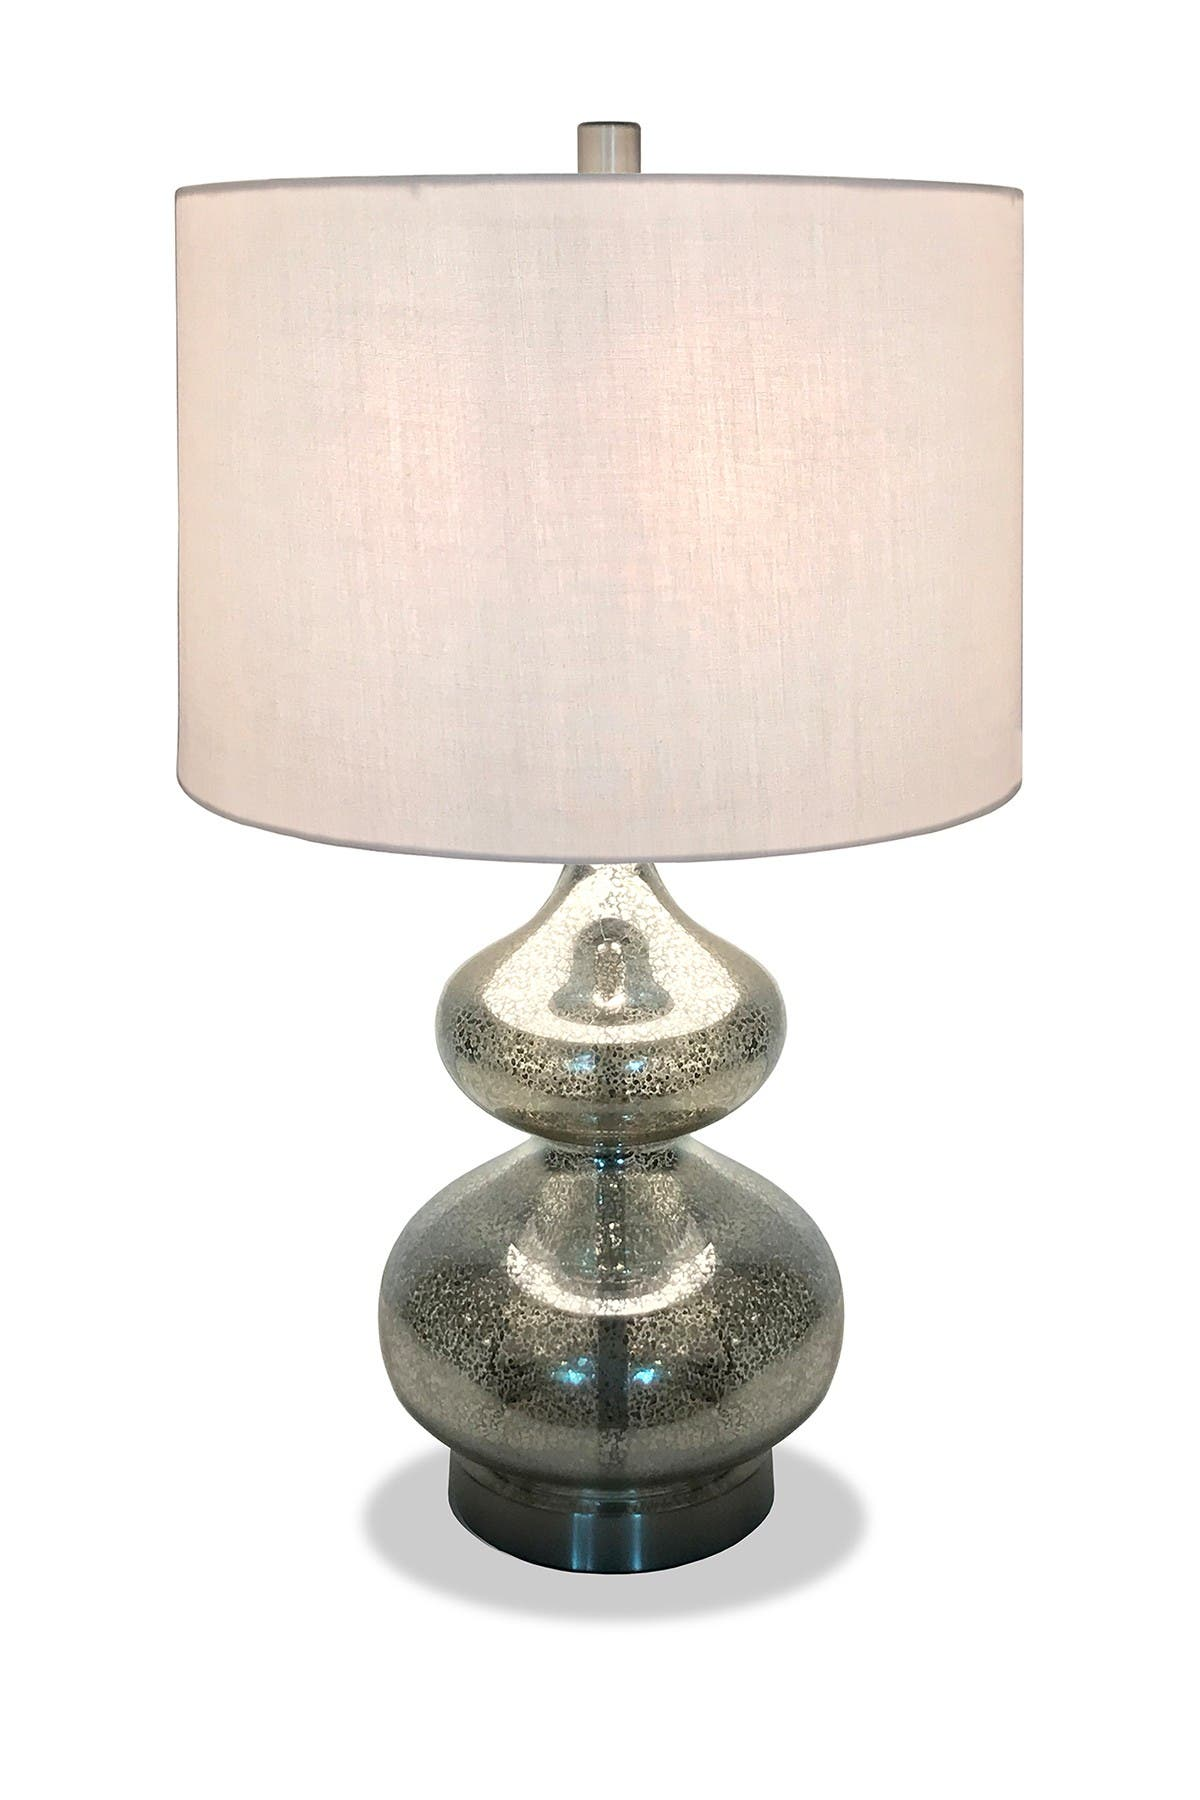 Image of Addison and Lane Katrin Table Lamp - Mercury Glass